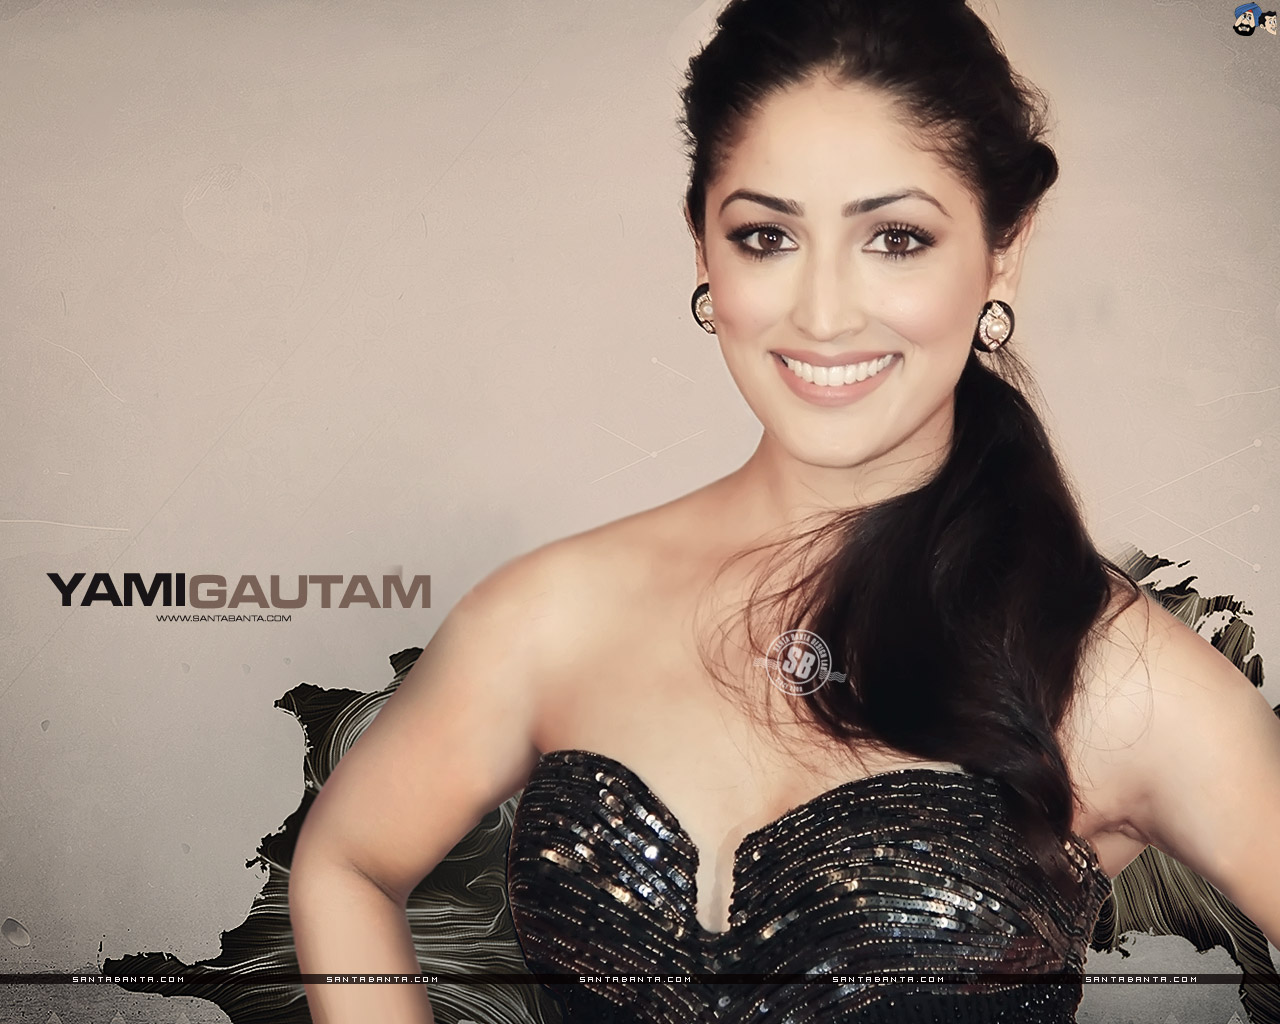 Yami Gautam HD Wallpapers | Most beautiful places in the ...